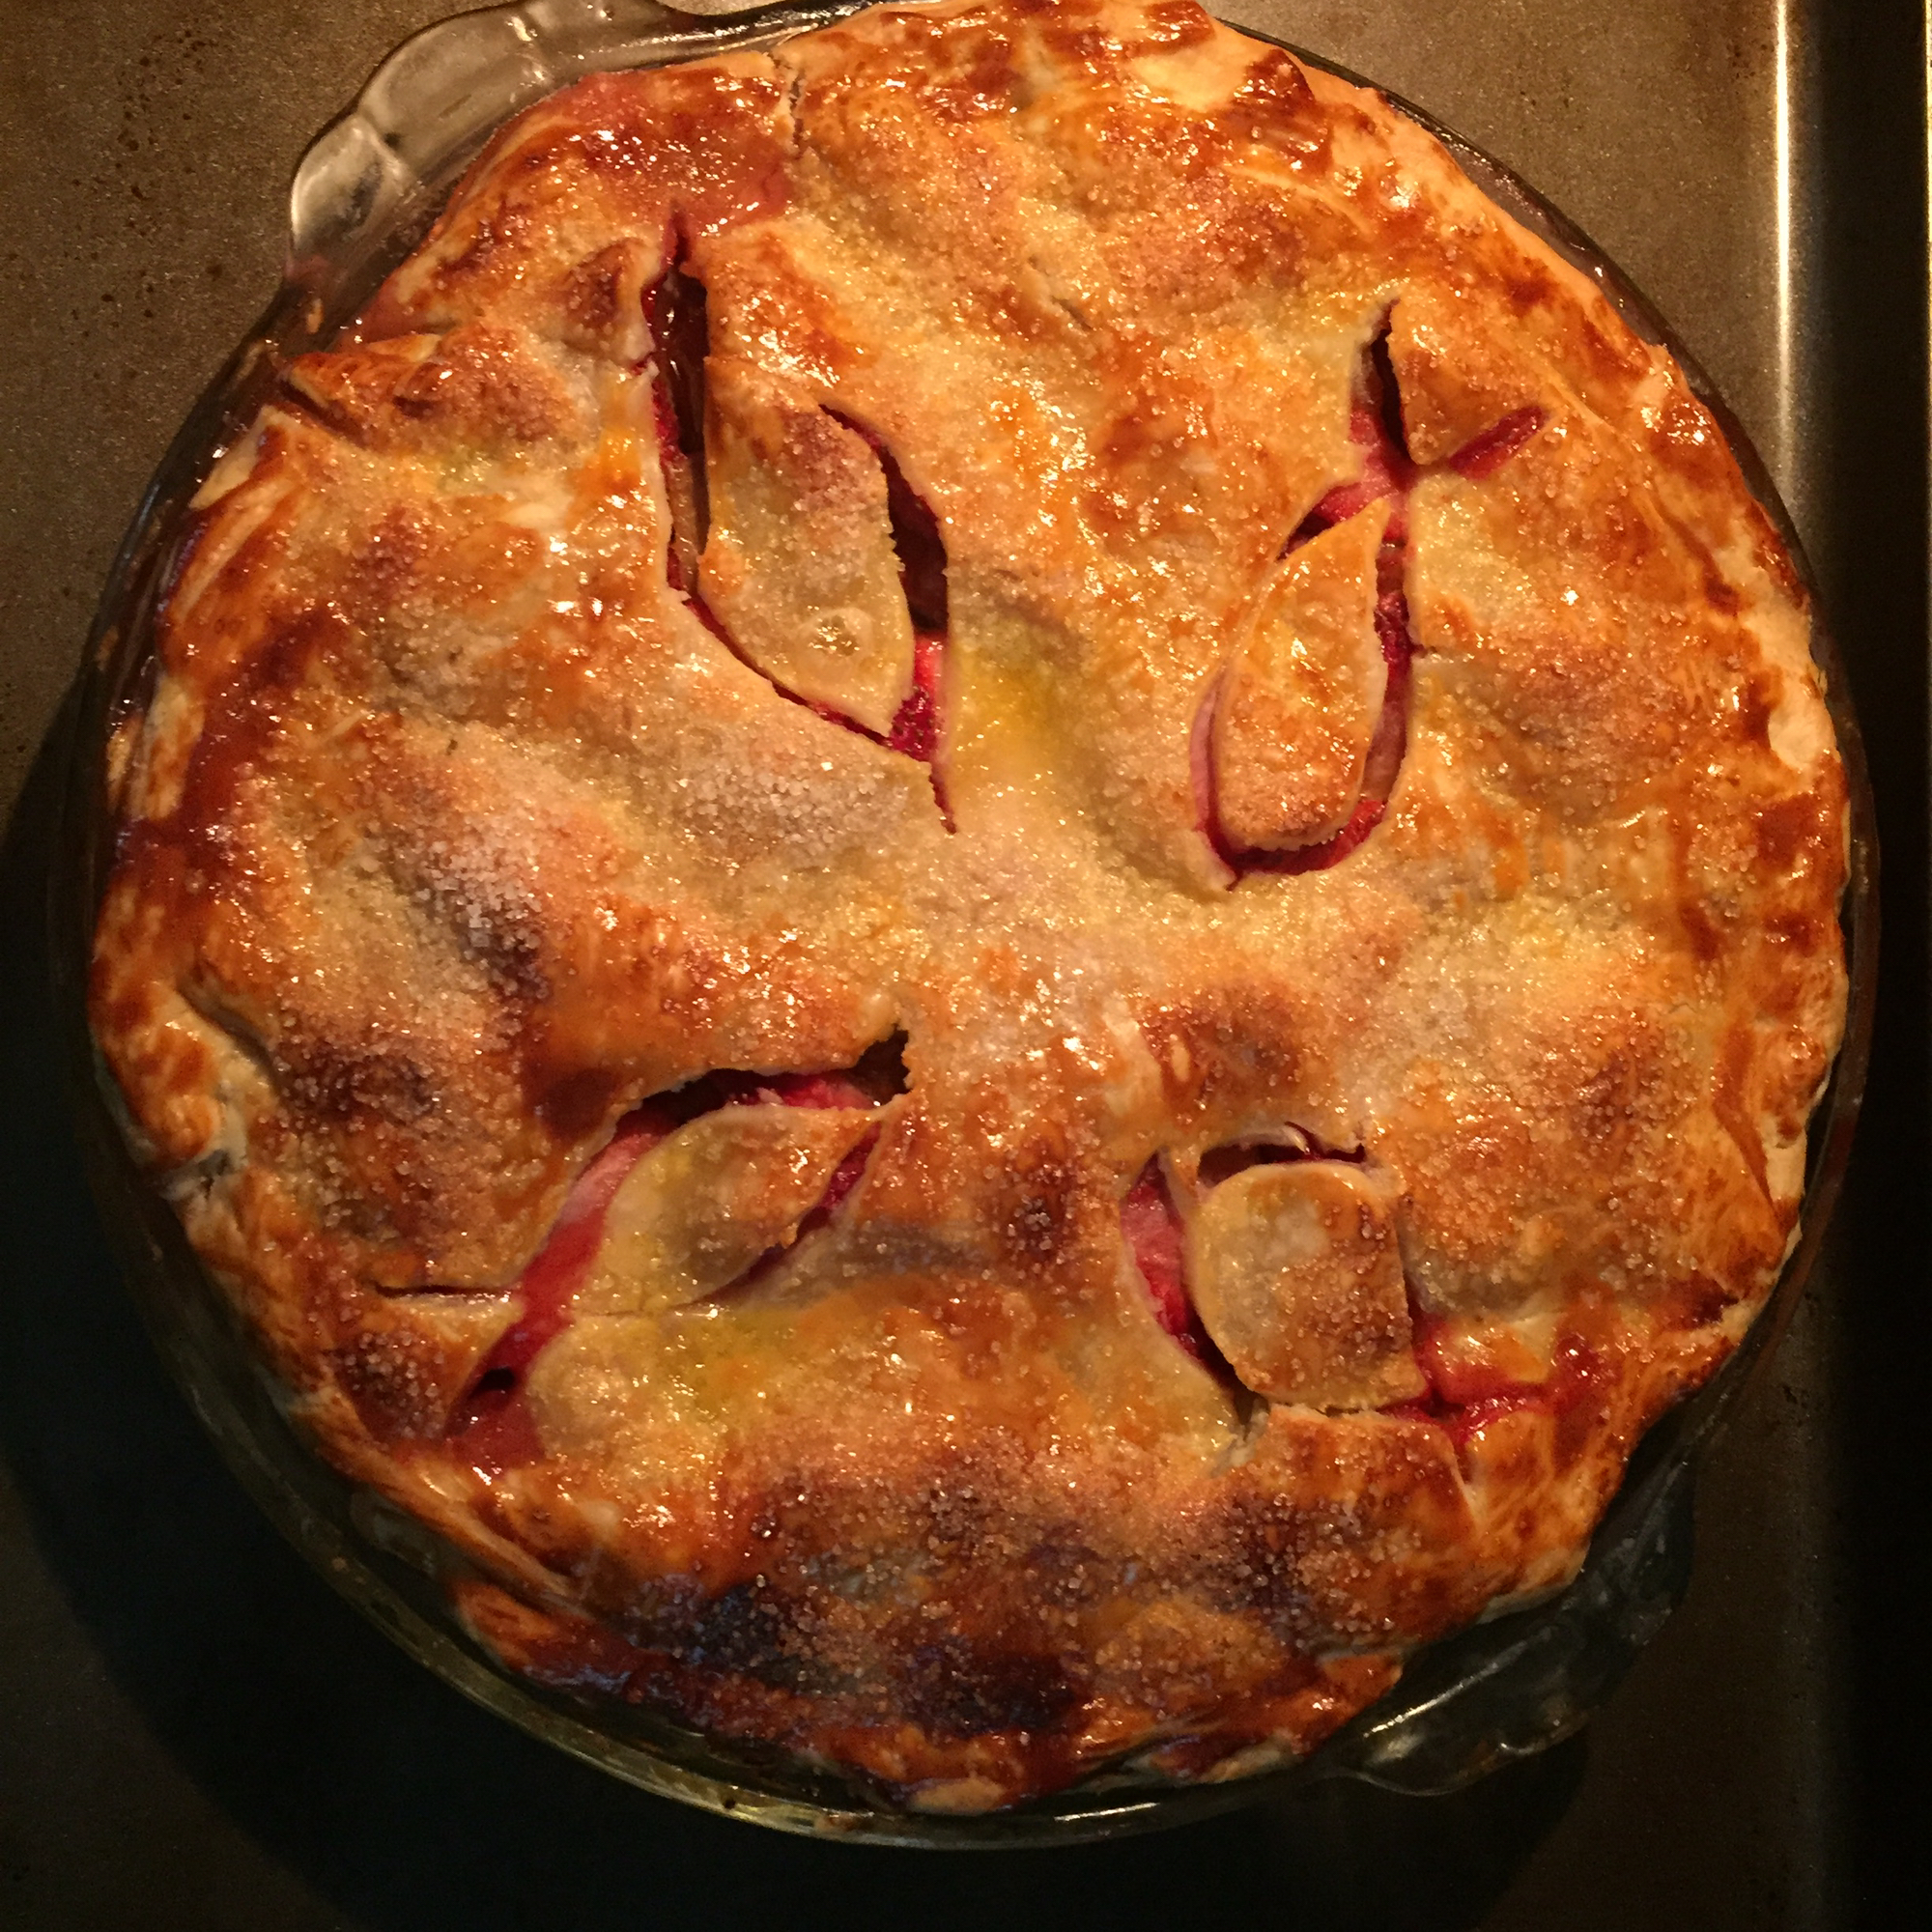 Rhubarb and Strawberry Pie ering